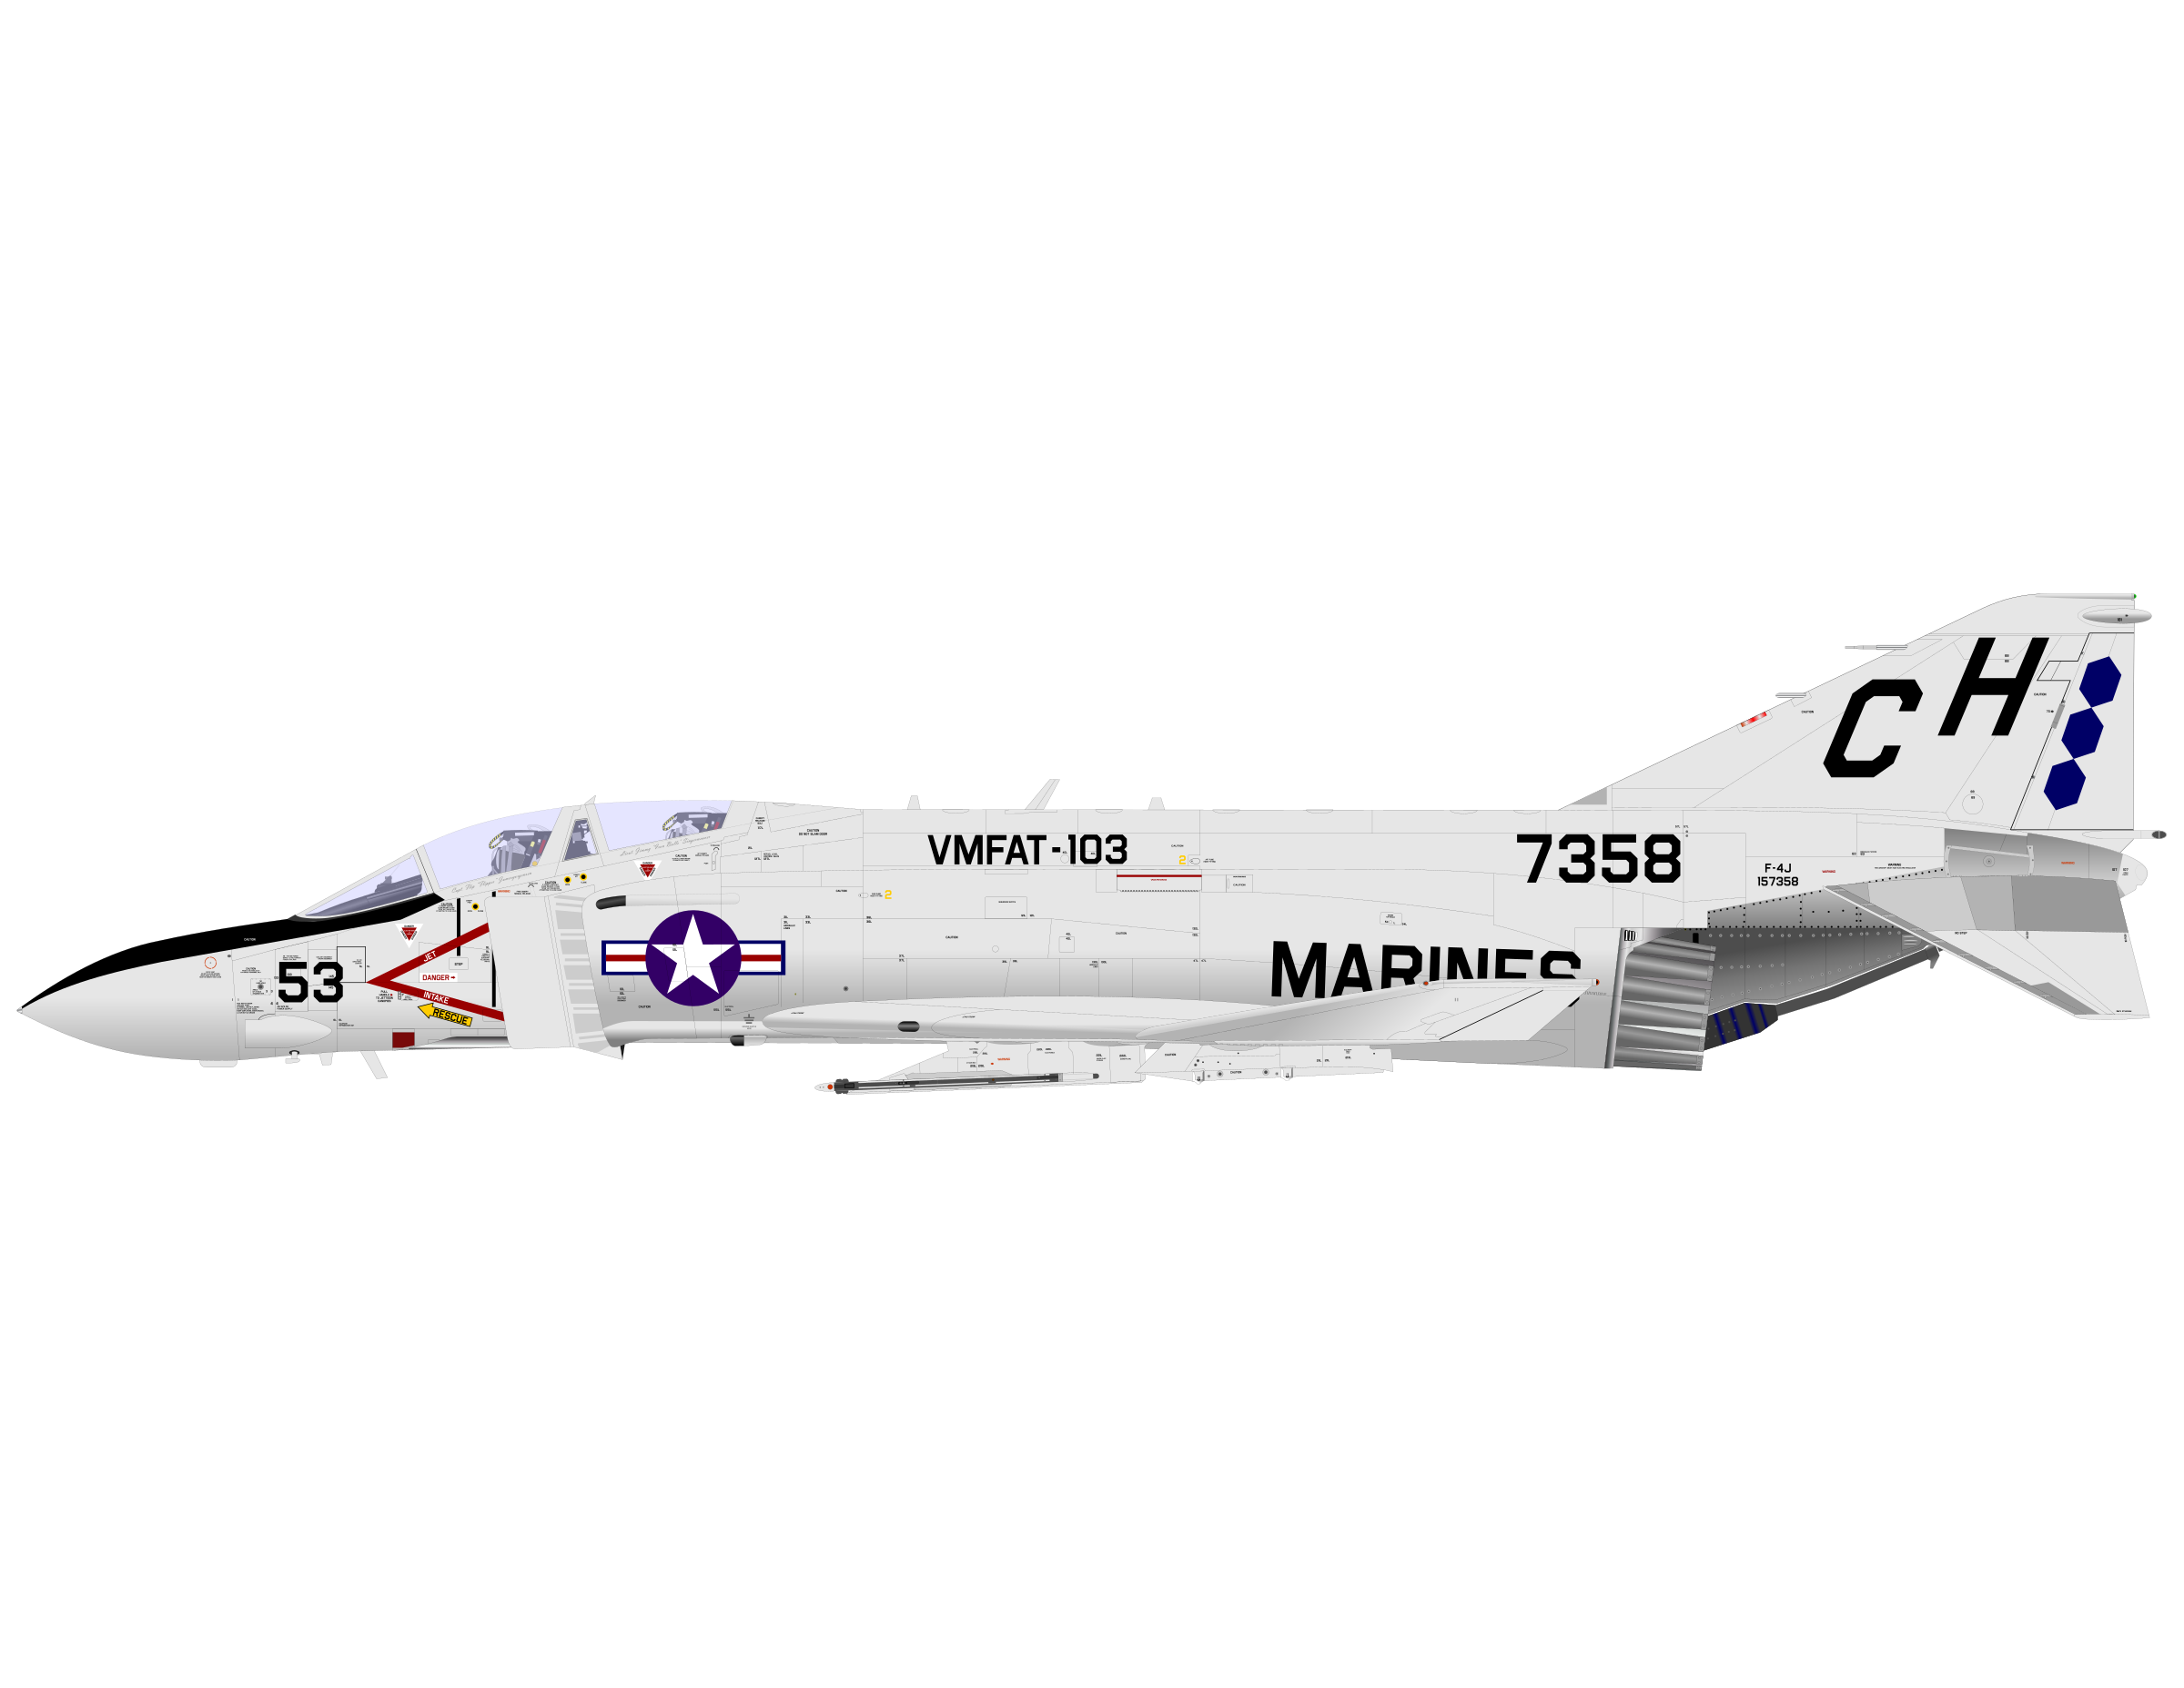 PHANTOM F-4 by charner1963